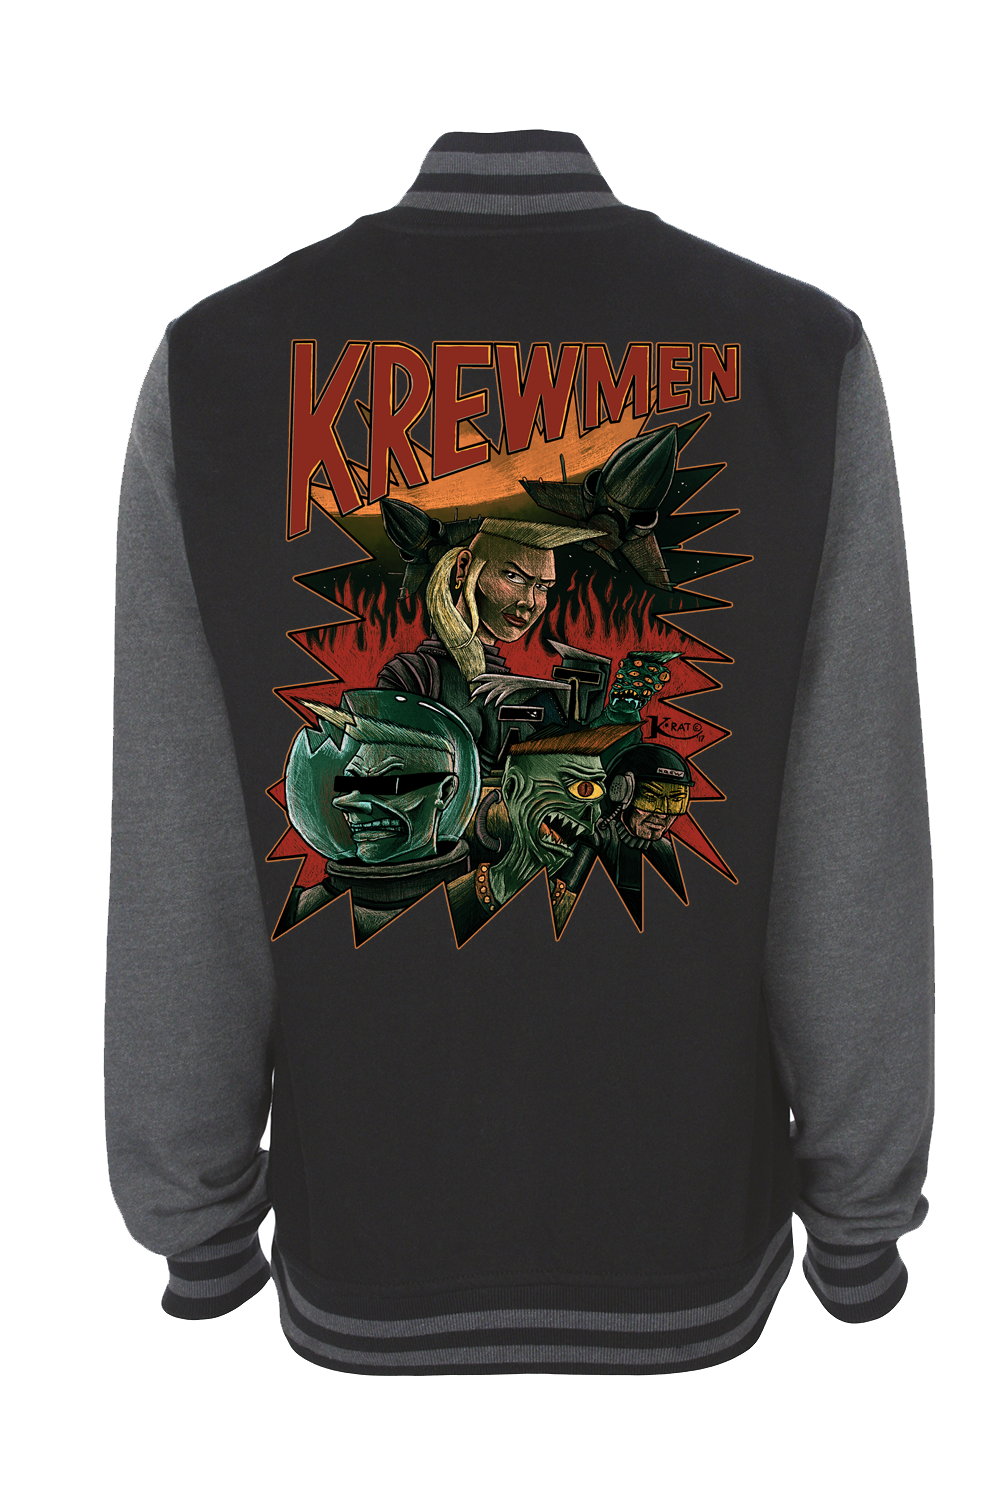 KREWMEN VARSITY JACKET UNISEX  by KING RAT DESIGN